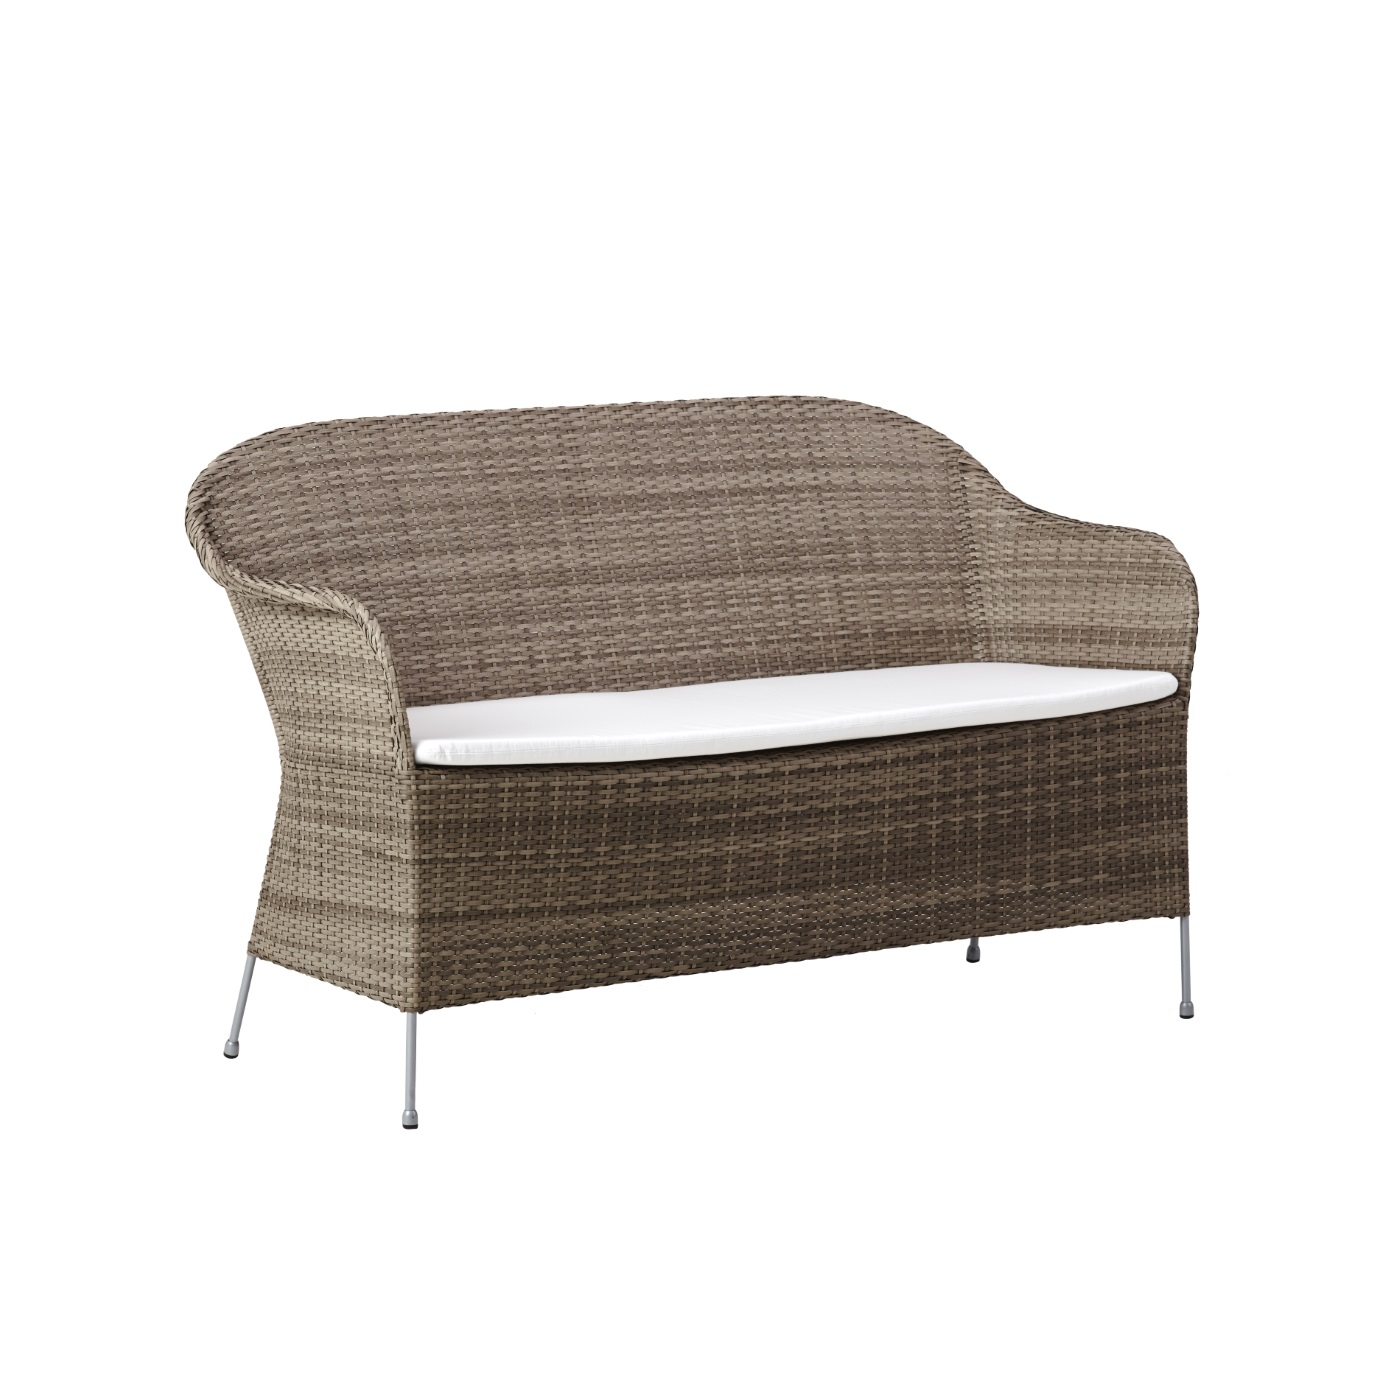 Athene soffa konstrotting grey, Sika-Design